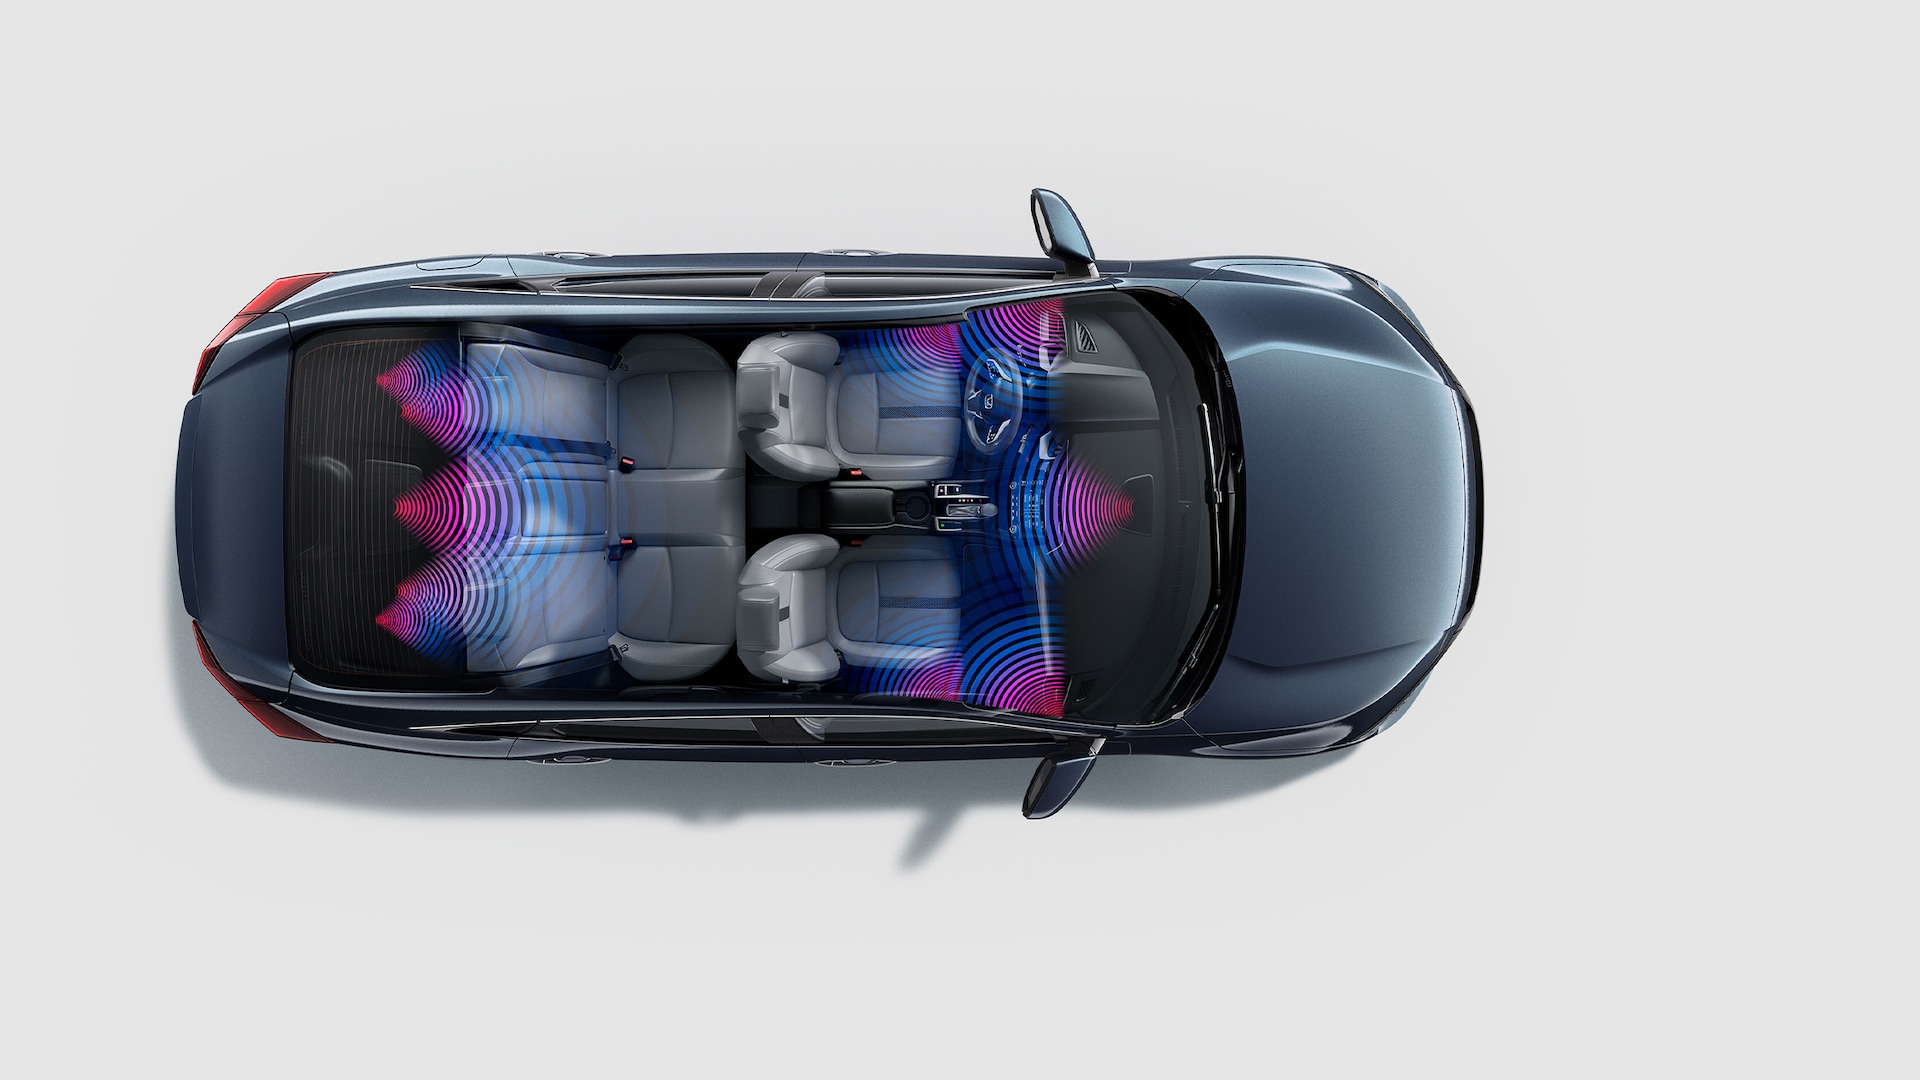 Overhead view of the 2021 Honda Civic Touring Sedan in Cosmic Blue Metallic with illustrated audio sound waves.